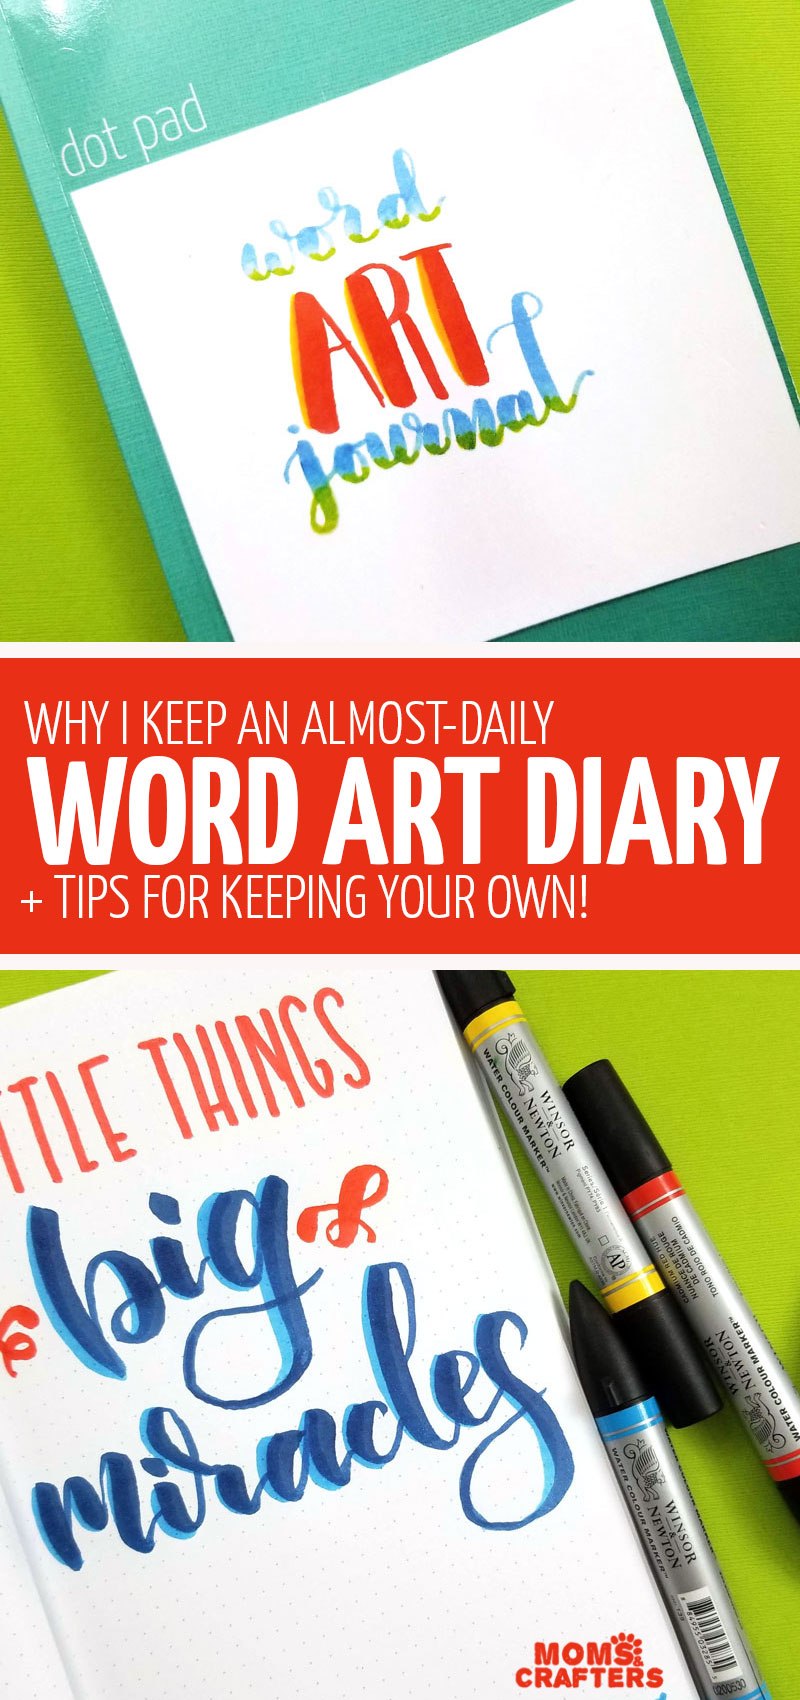 Keep a daily word art diary, a creative lettering journal where you practice calligraphy, hand lettering, or just relax and unwind! This unique form of art therapy is simple and doesn't take time.